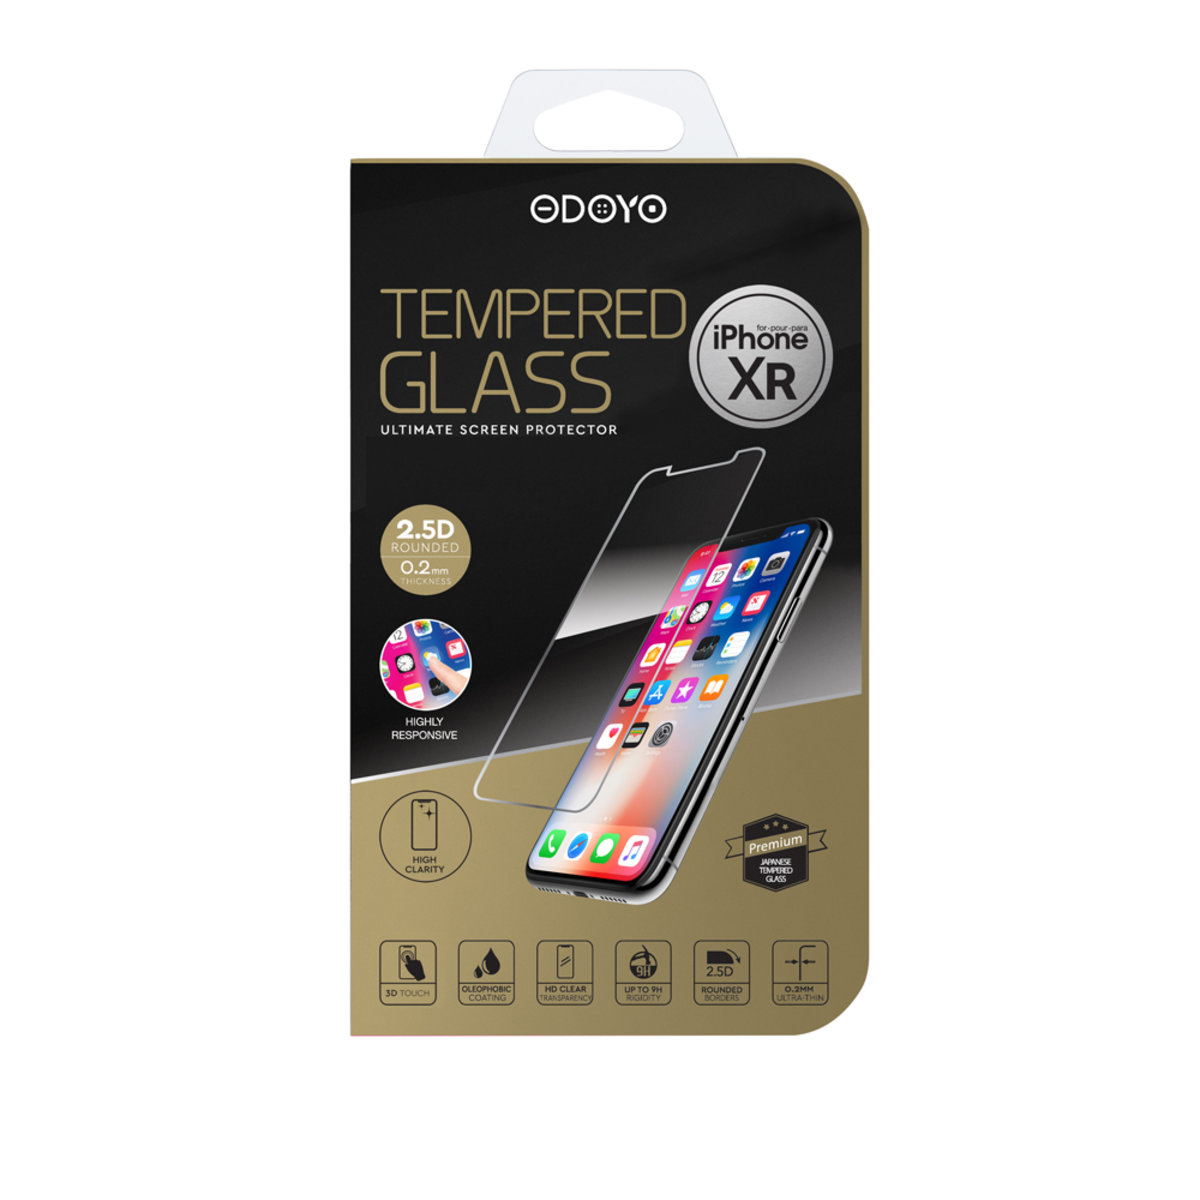 0.2mm Tempered Glass Ultimate Screen Protector for iPhone XR